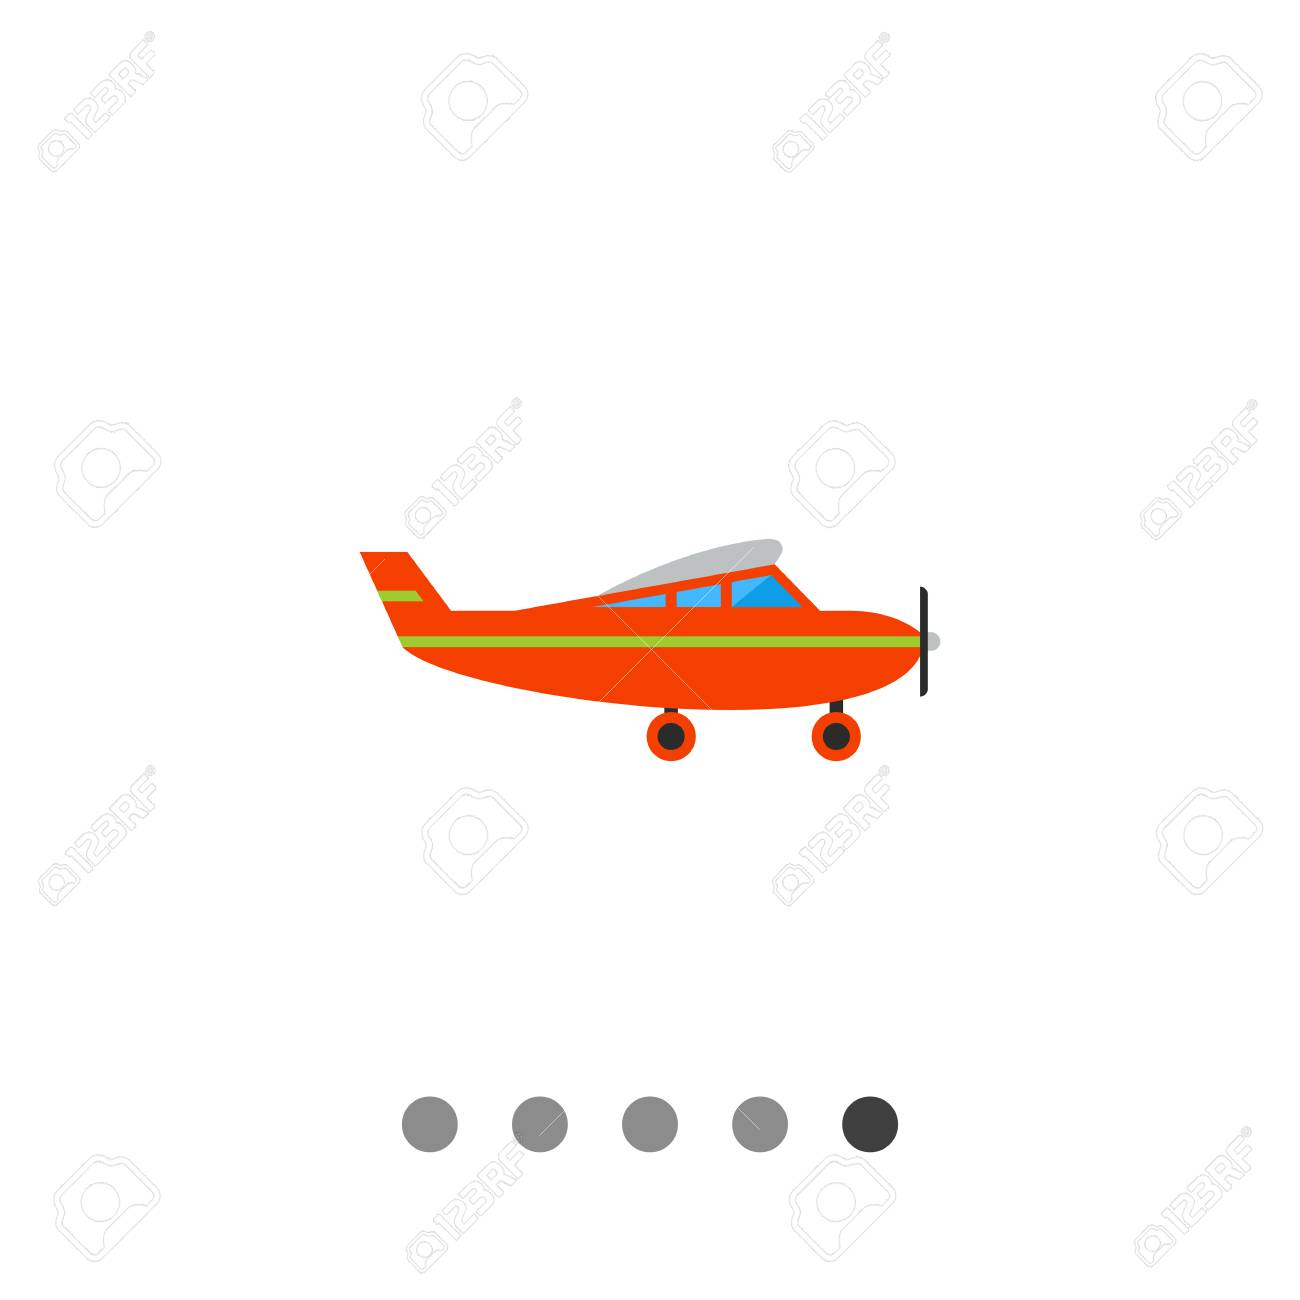 Multicolored vector icon of kids plane, side view.